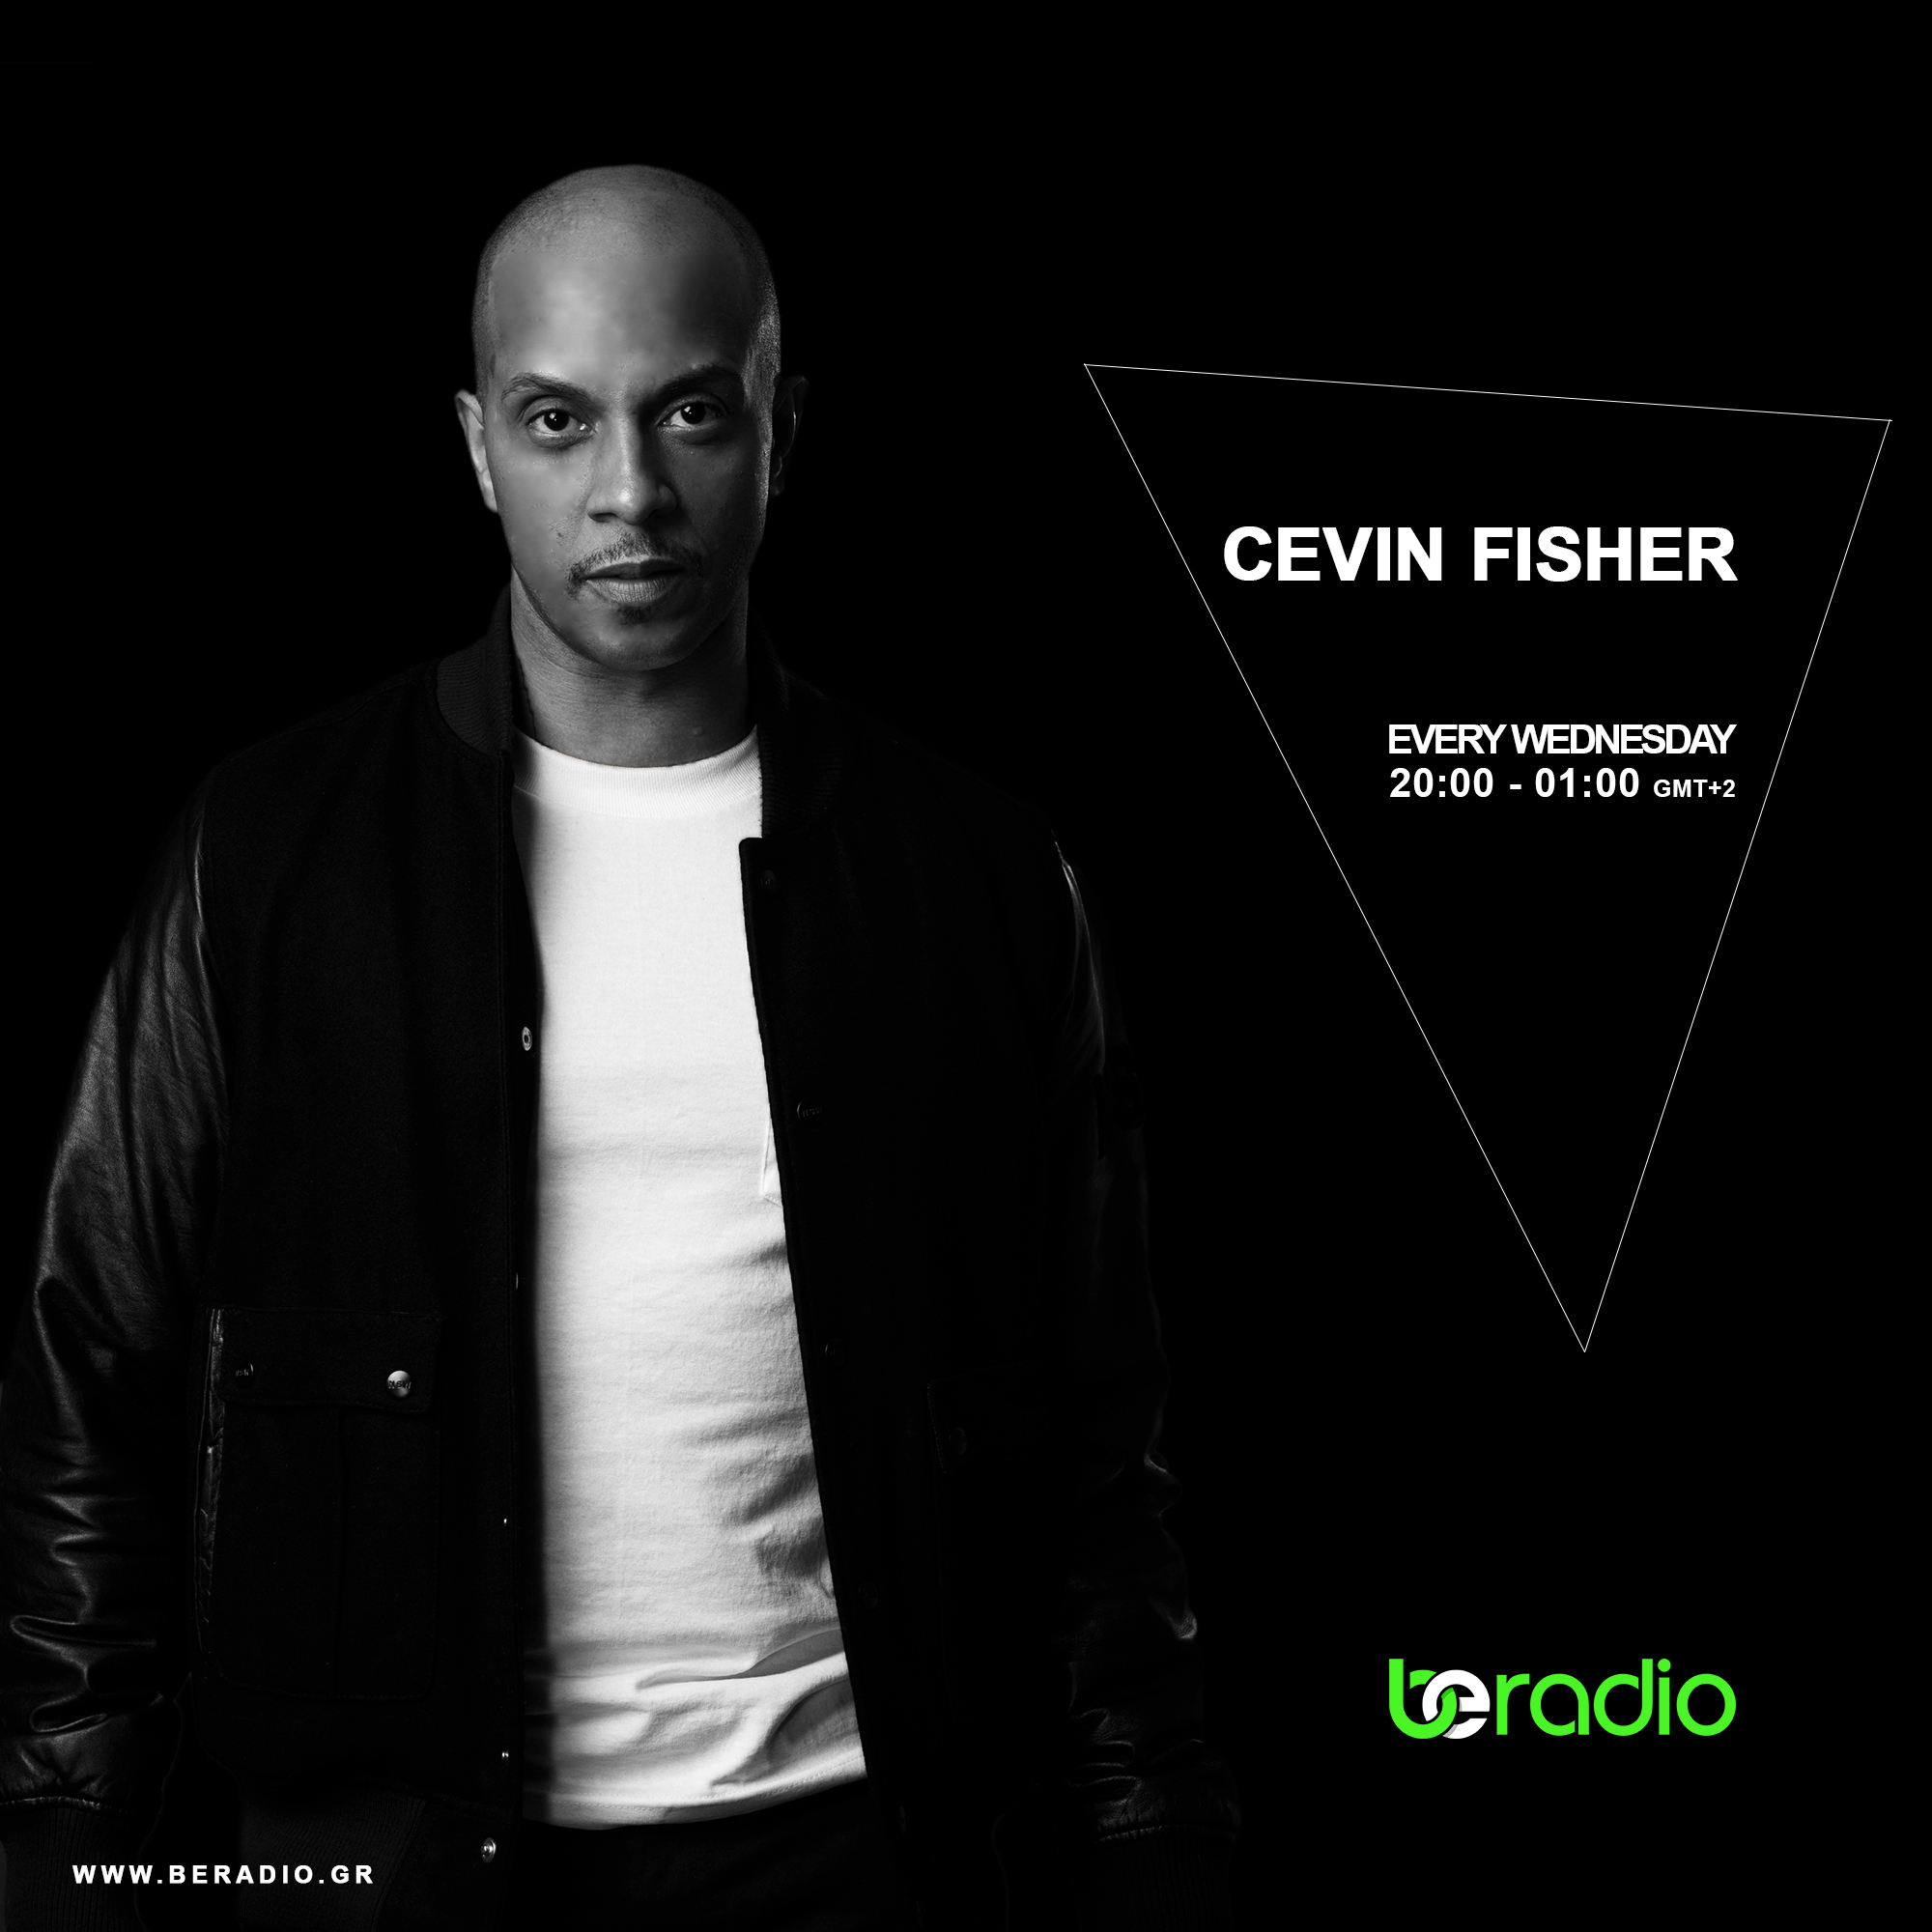 CEVIN FISHER